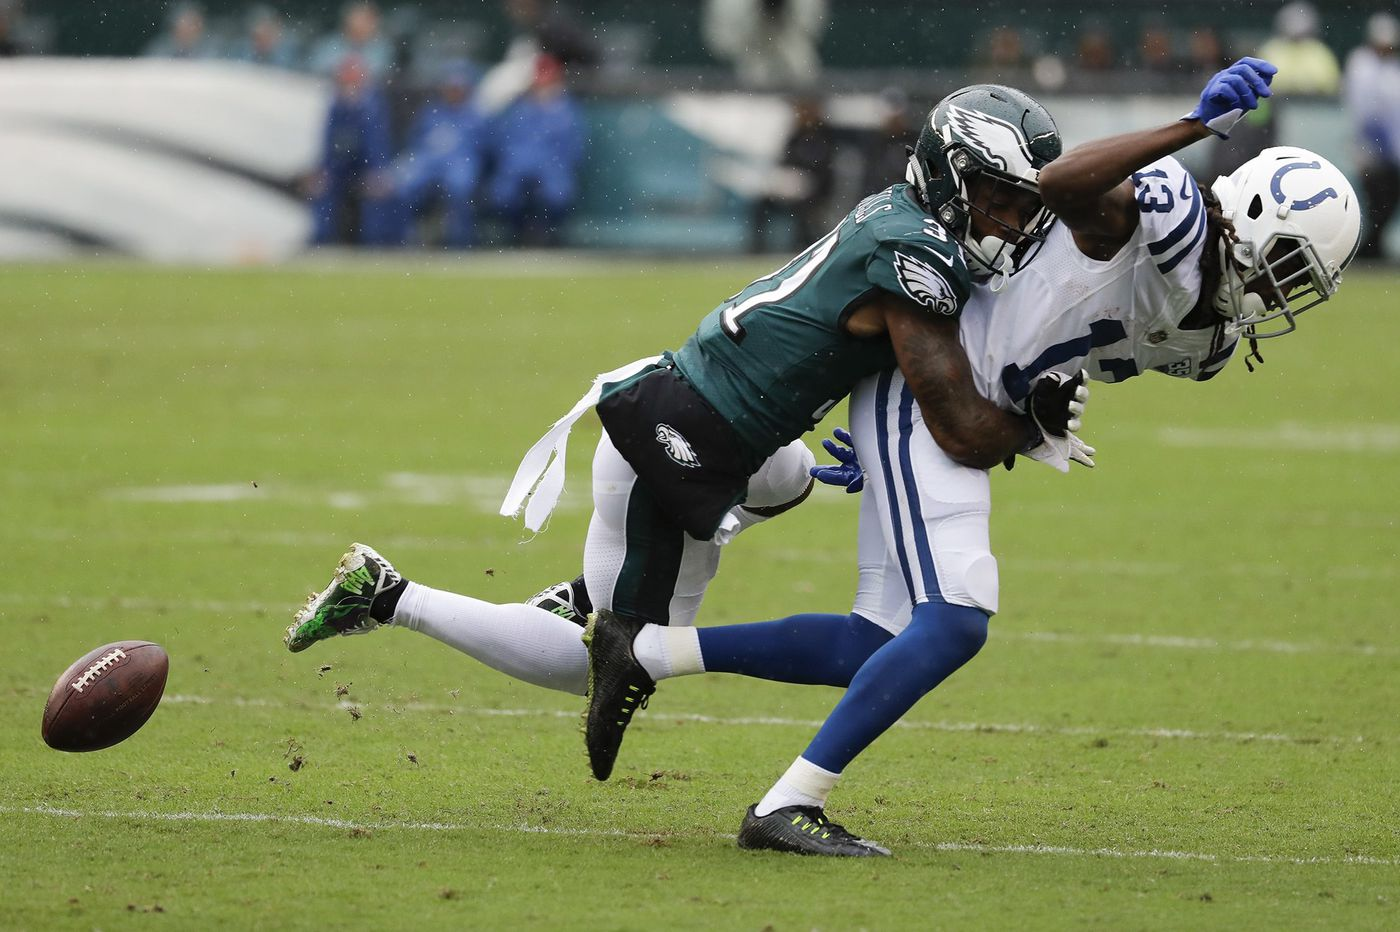 Eagles' red-zone defense, not Carson Wentz, was the difference-maker in win over Colts